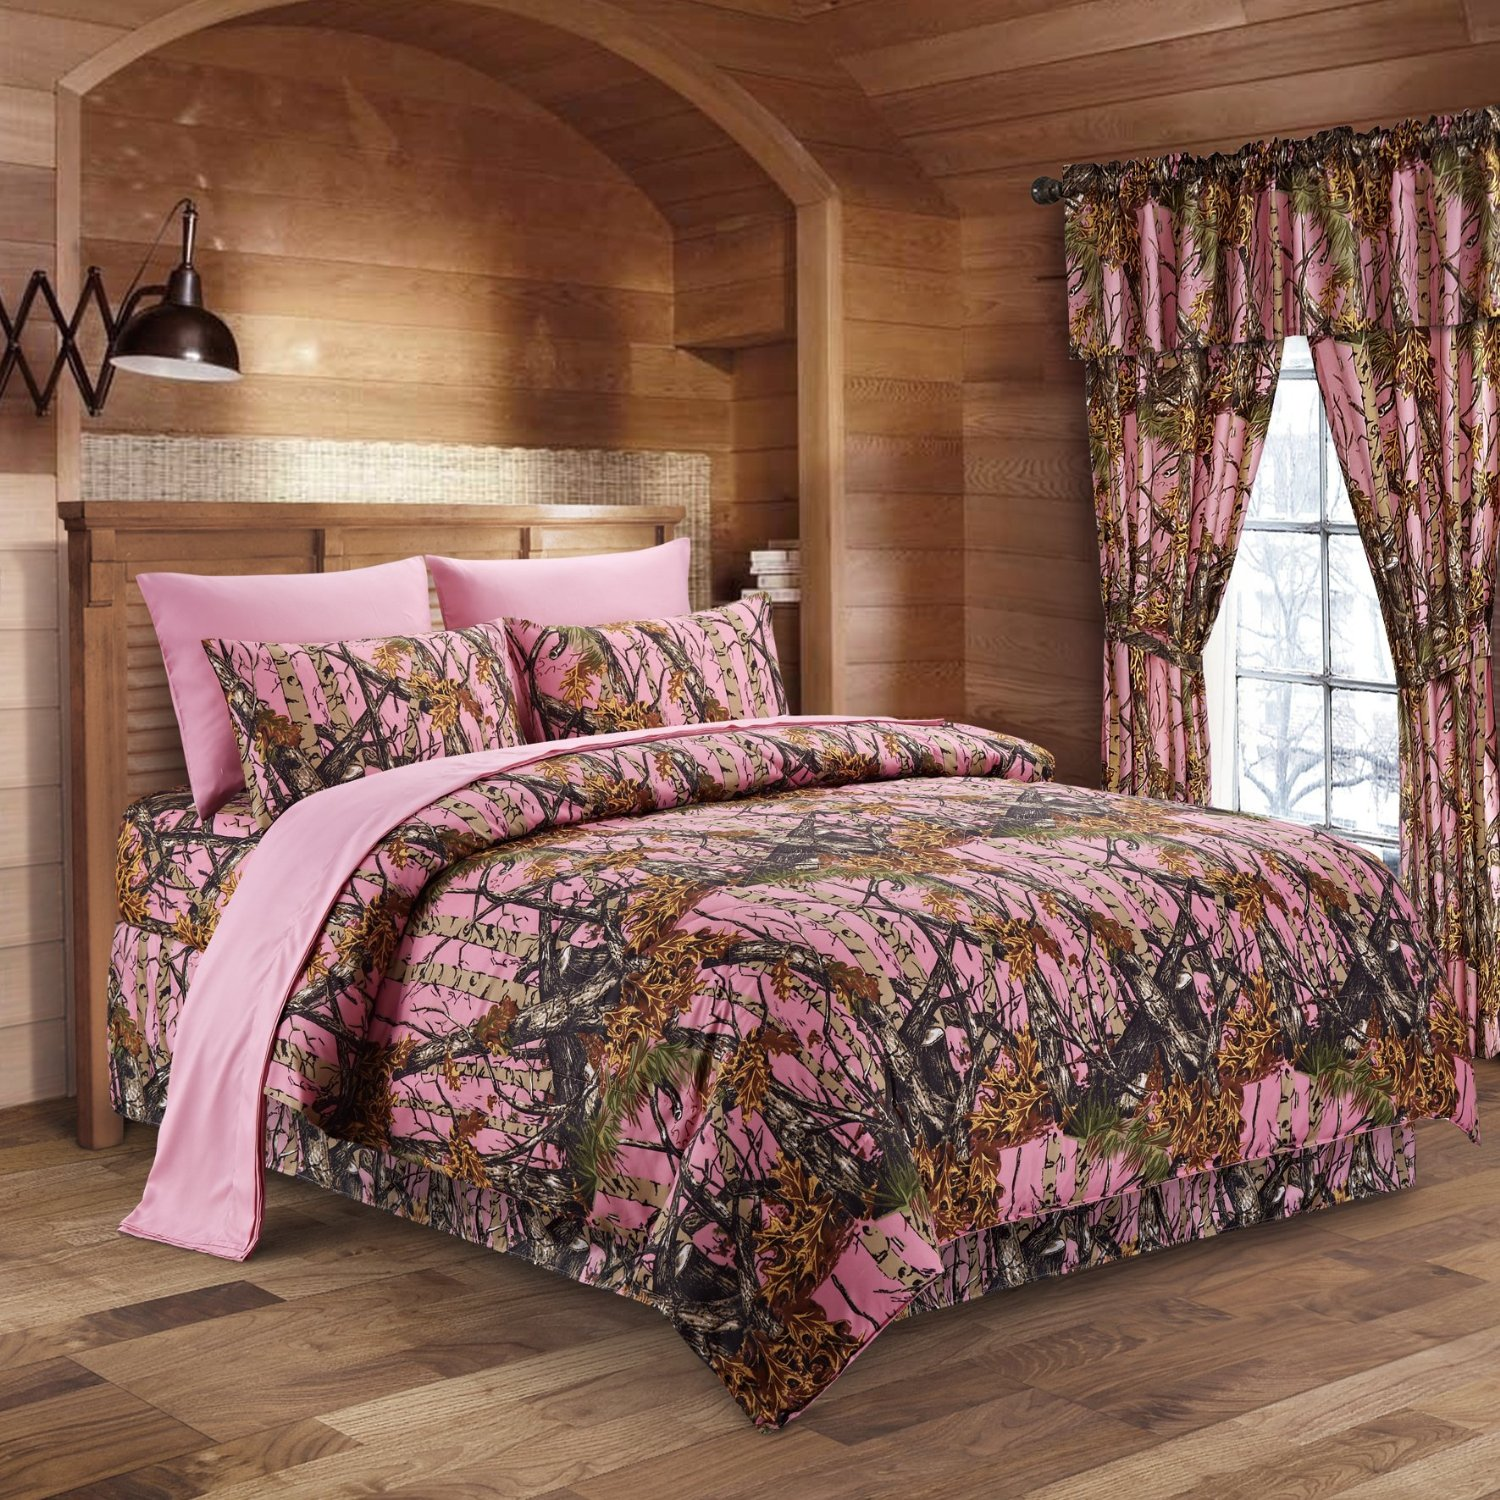 pink camo bedroom set 15 s day gift ideas for hunters amp huntress 16727